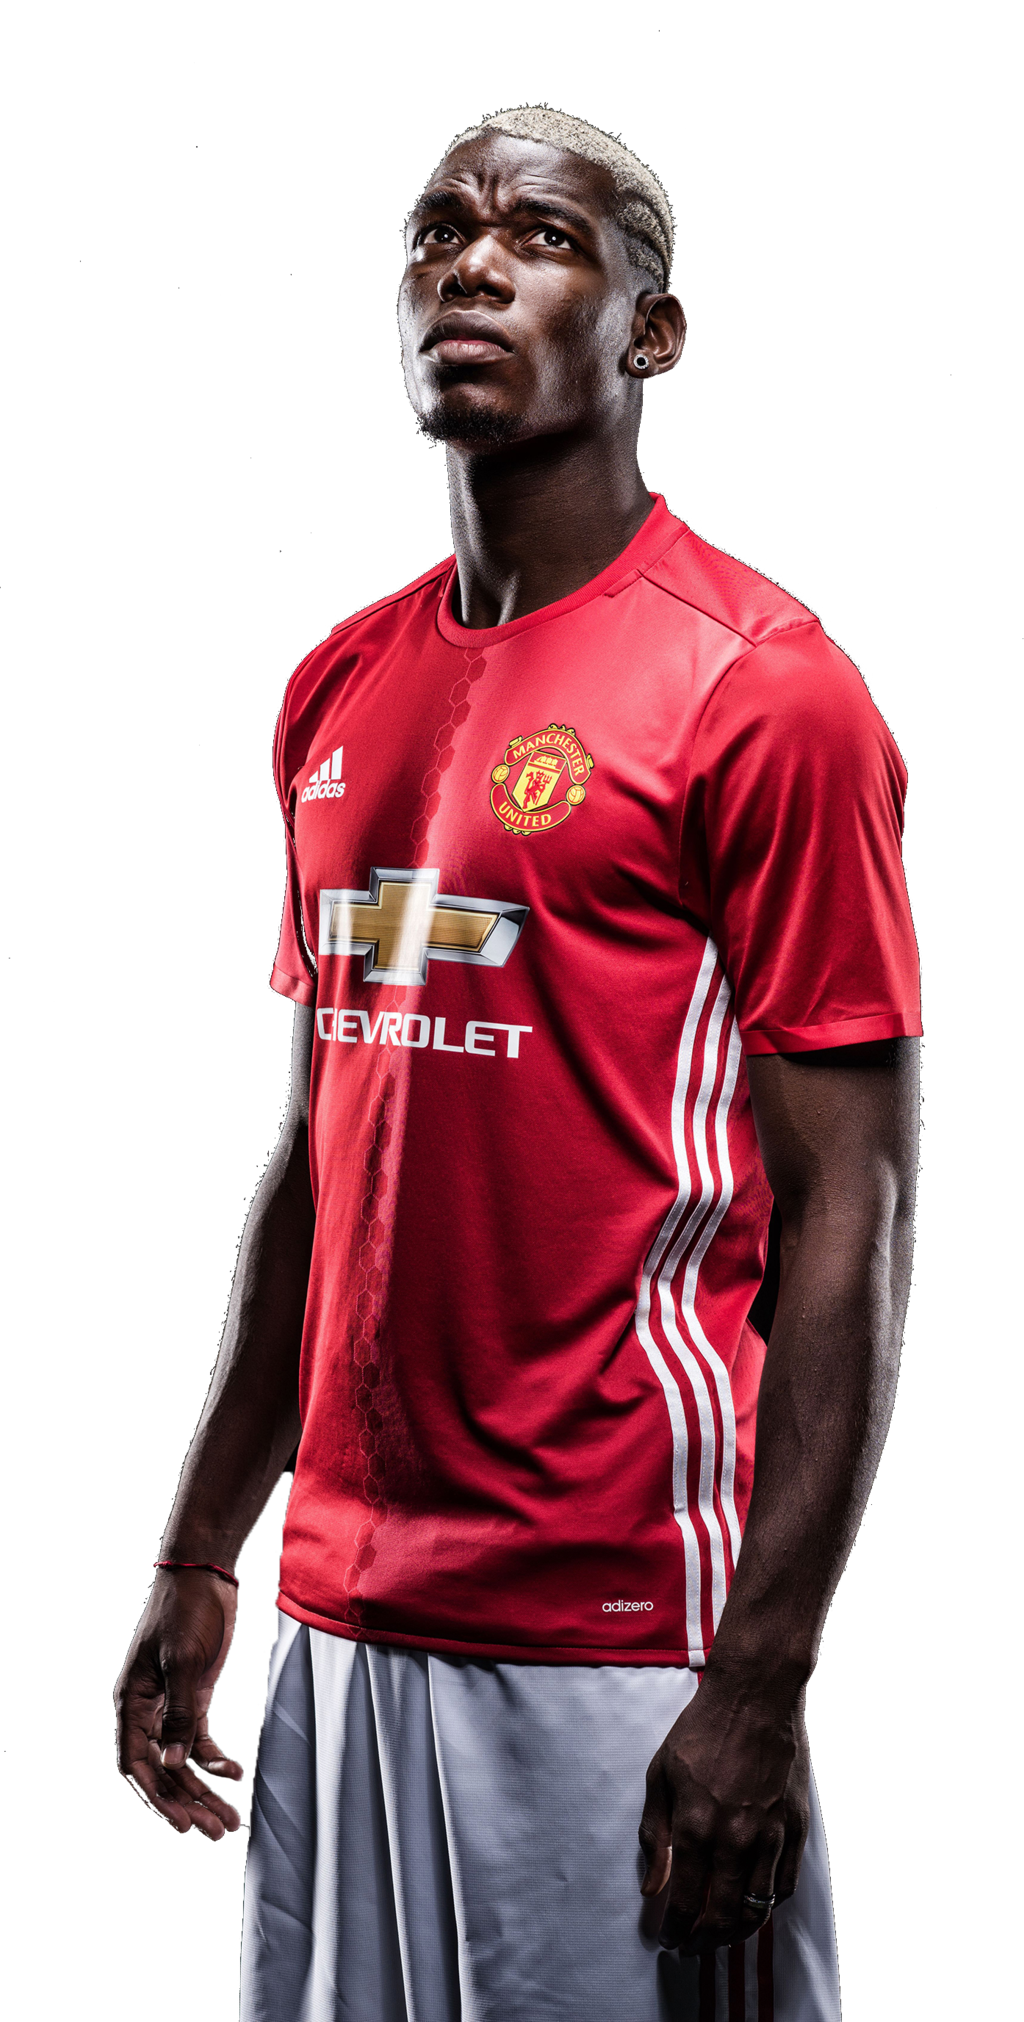 Paul Pogba Of Manchester United Paul Pogba Manchester United Soccer Paul Pogba Manchester United